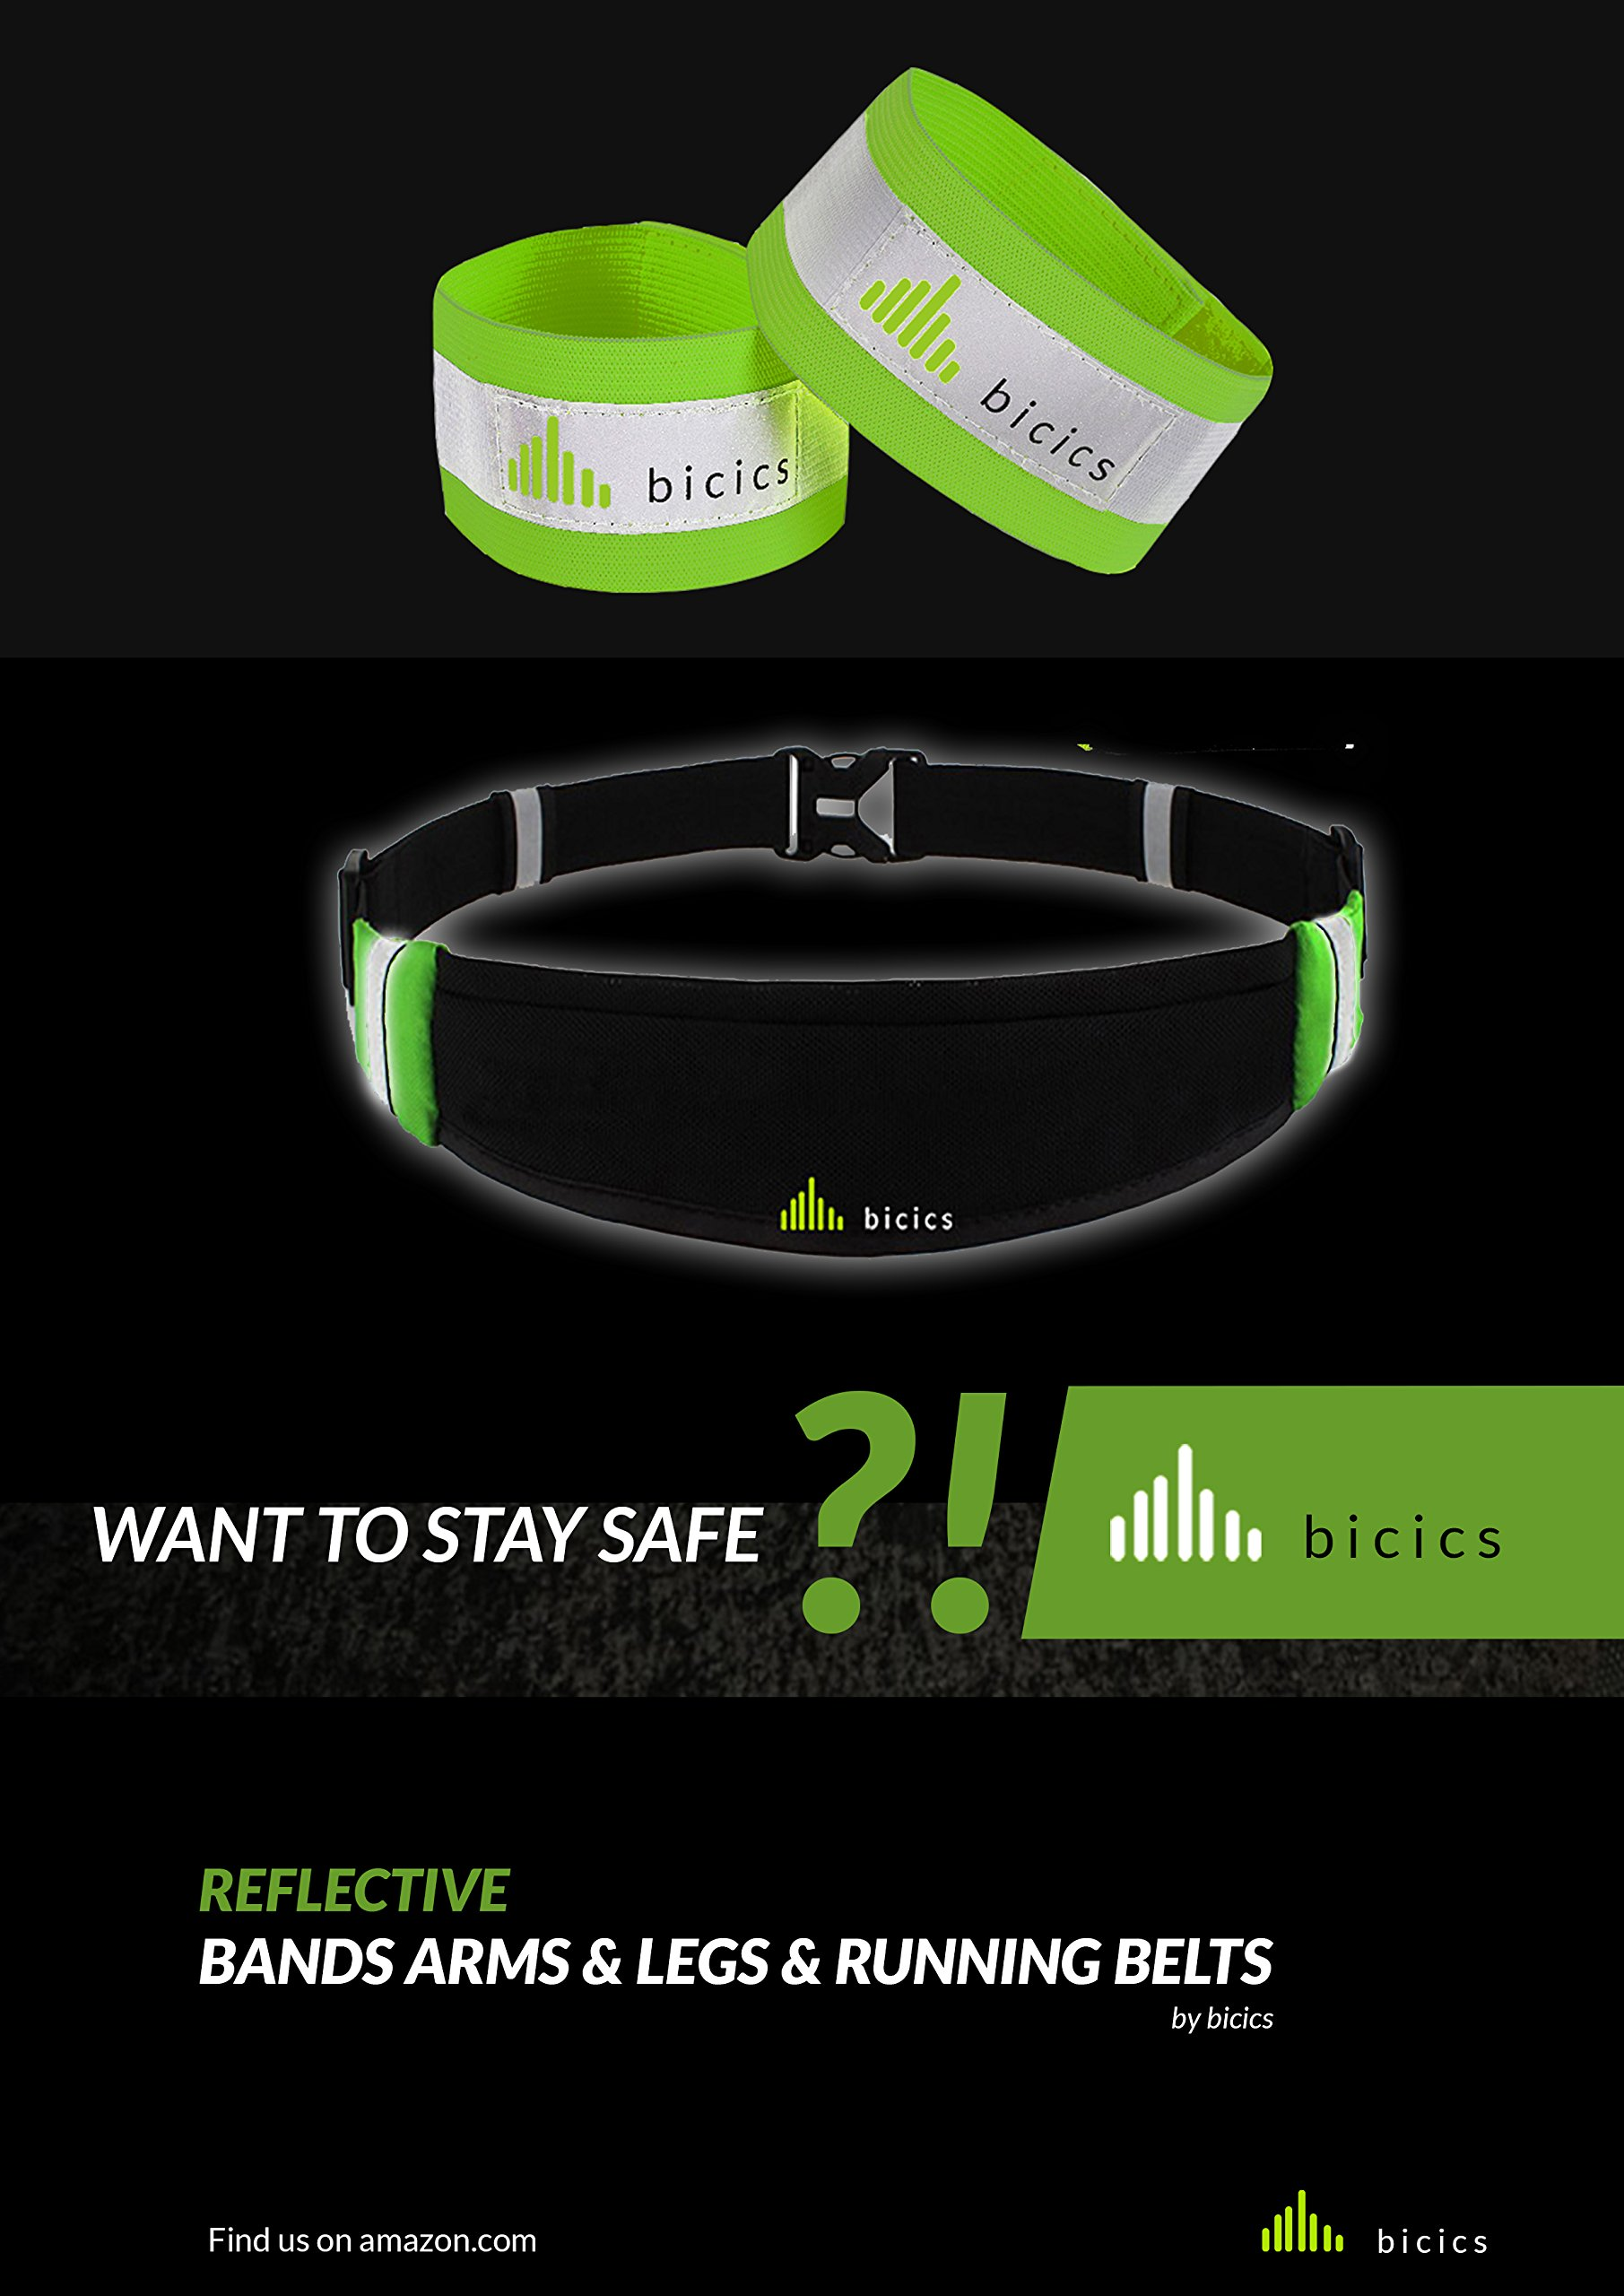 The Four Knox: 1 Running Belt + 2 Reflective Bands + 1 Fabric Bag / Running Belt – Running Gear - Waist Bag – Fitness Workout Belt– Reflective Bands - #1for Running, Cycling, Hiking – Eco Design.